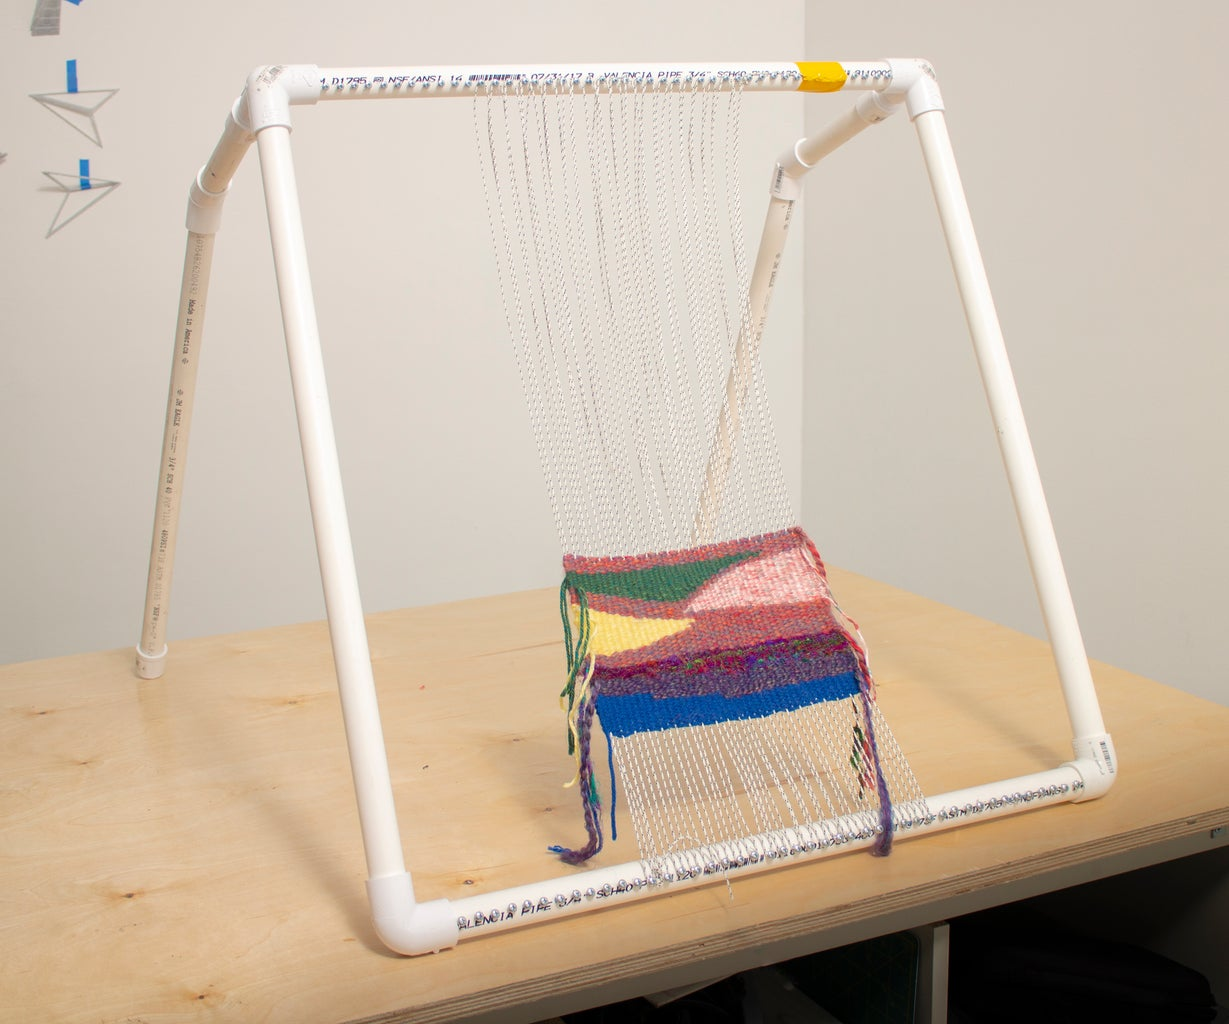 Make a Basic Loom With PVC Pipe